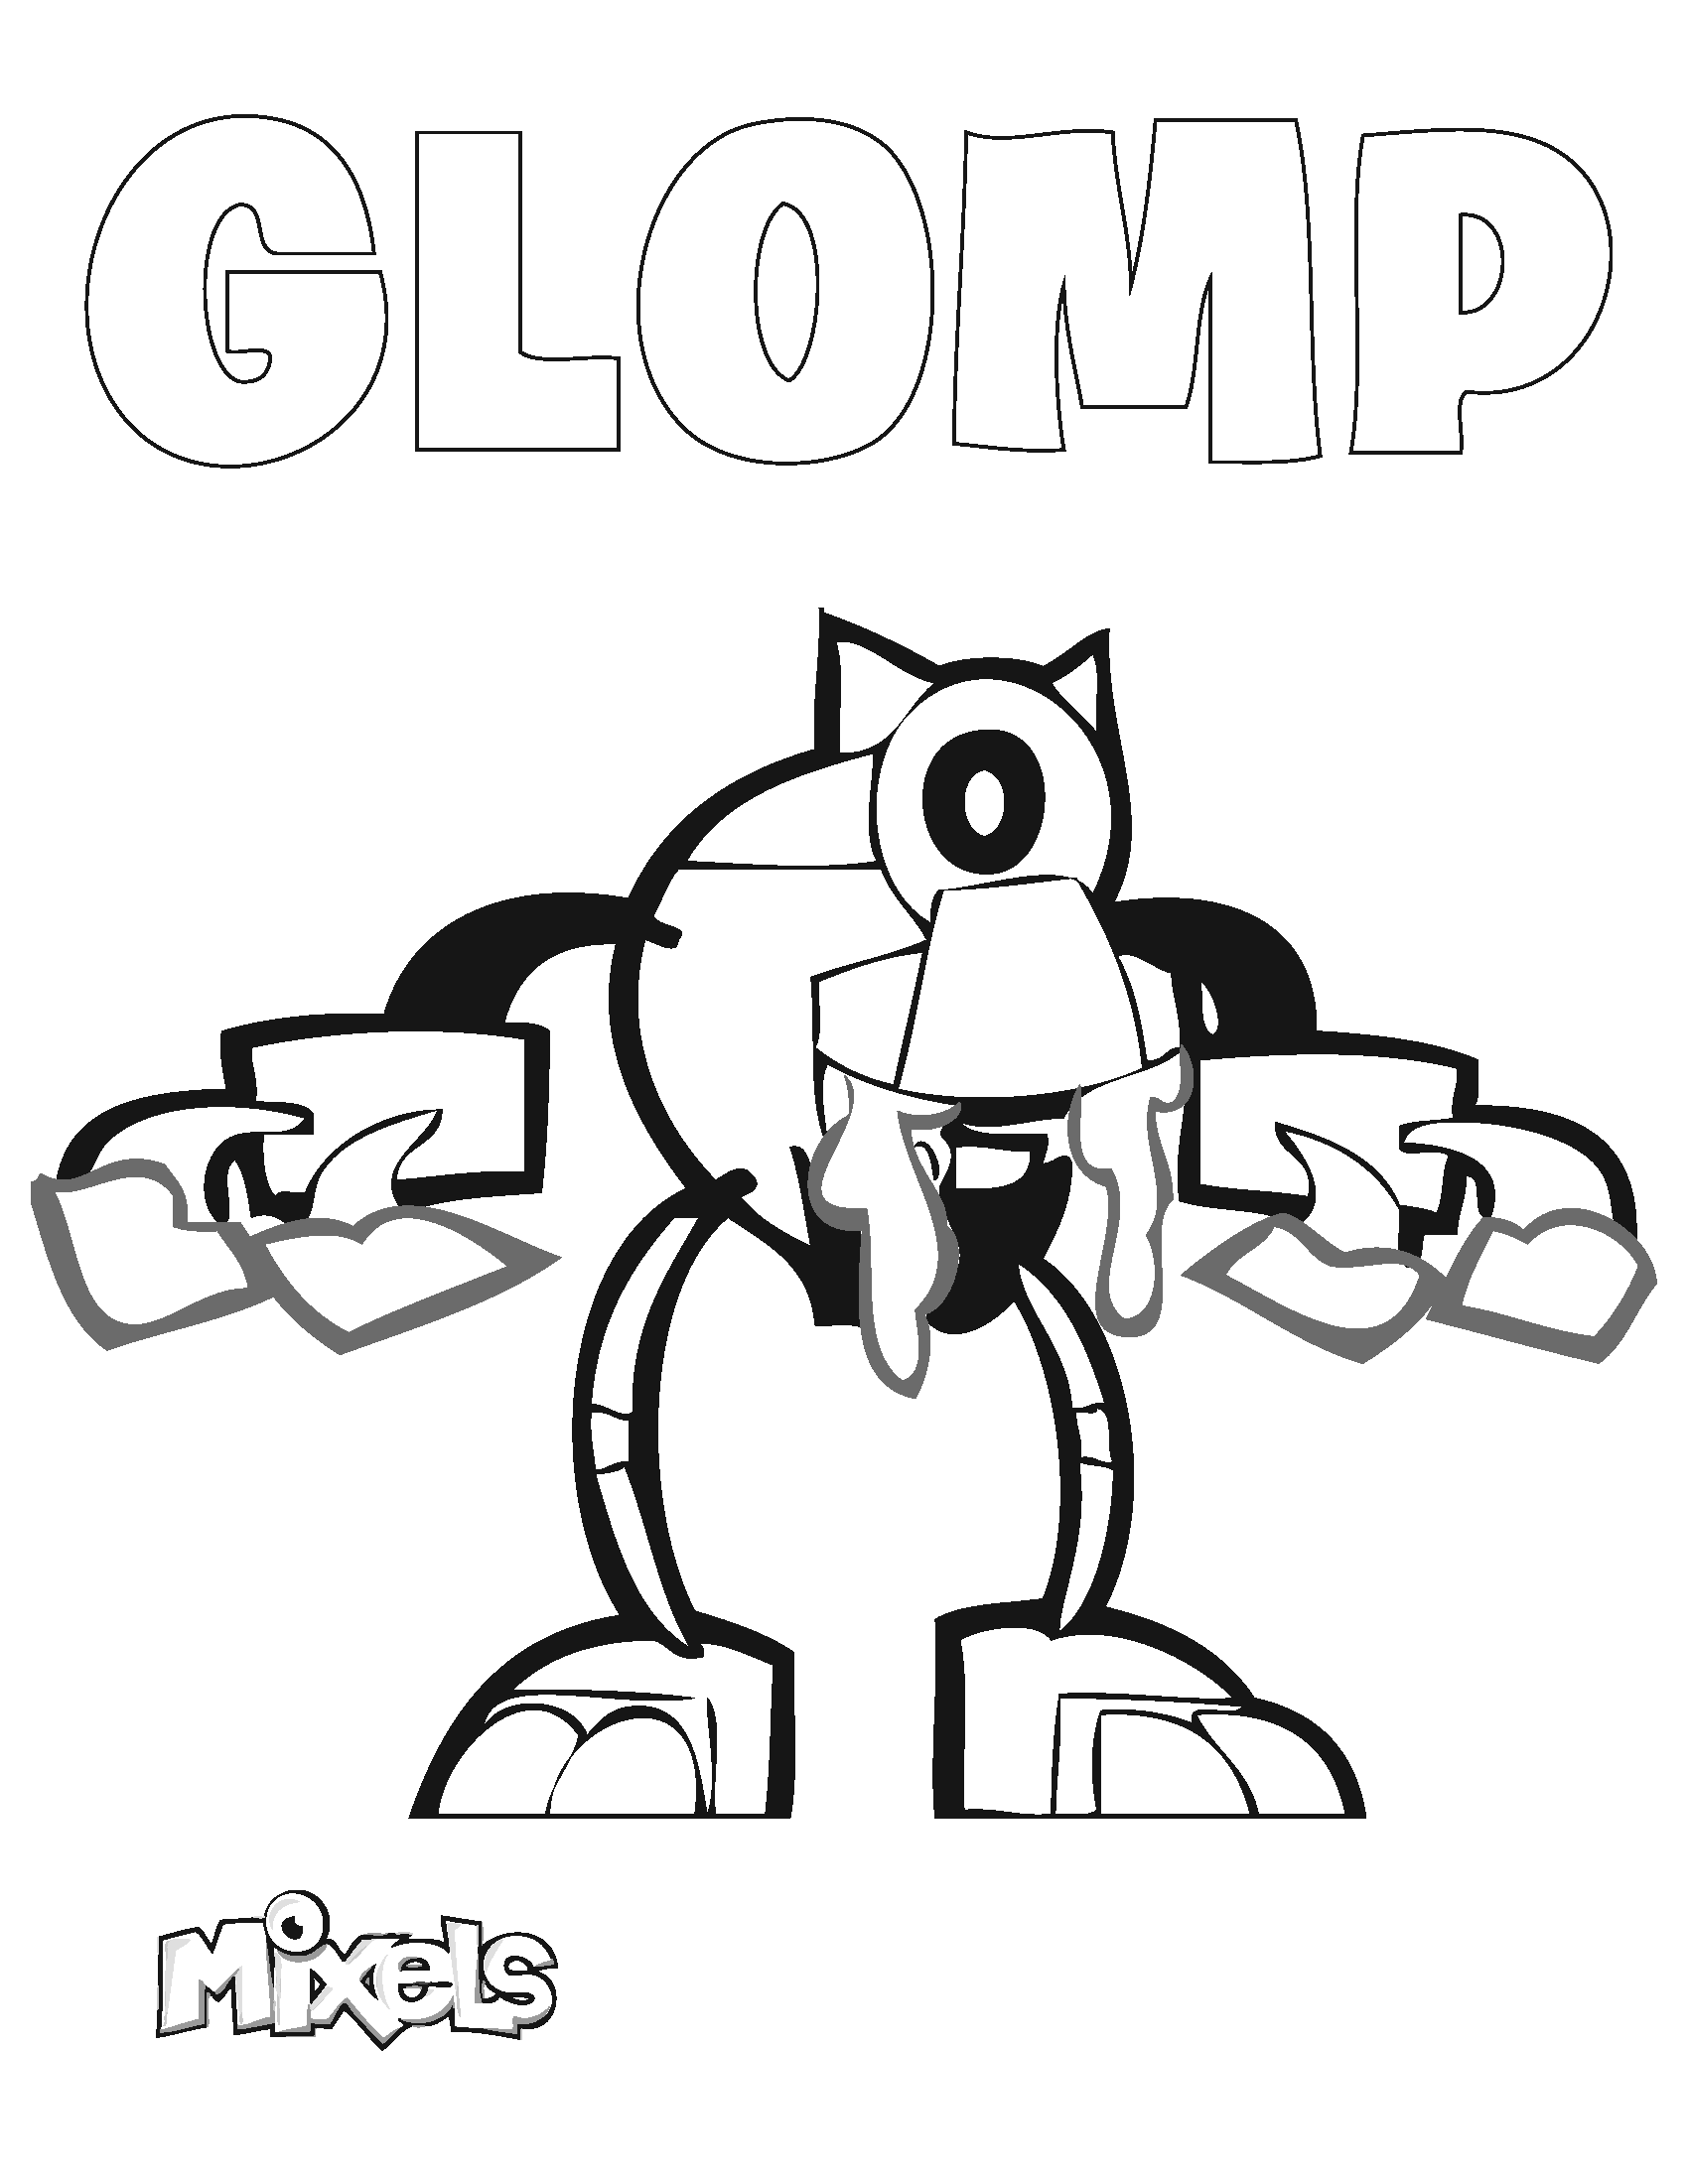 Mixels coloring page glomp eric 39 s activity pages for Lego mixels coloring pages